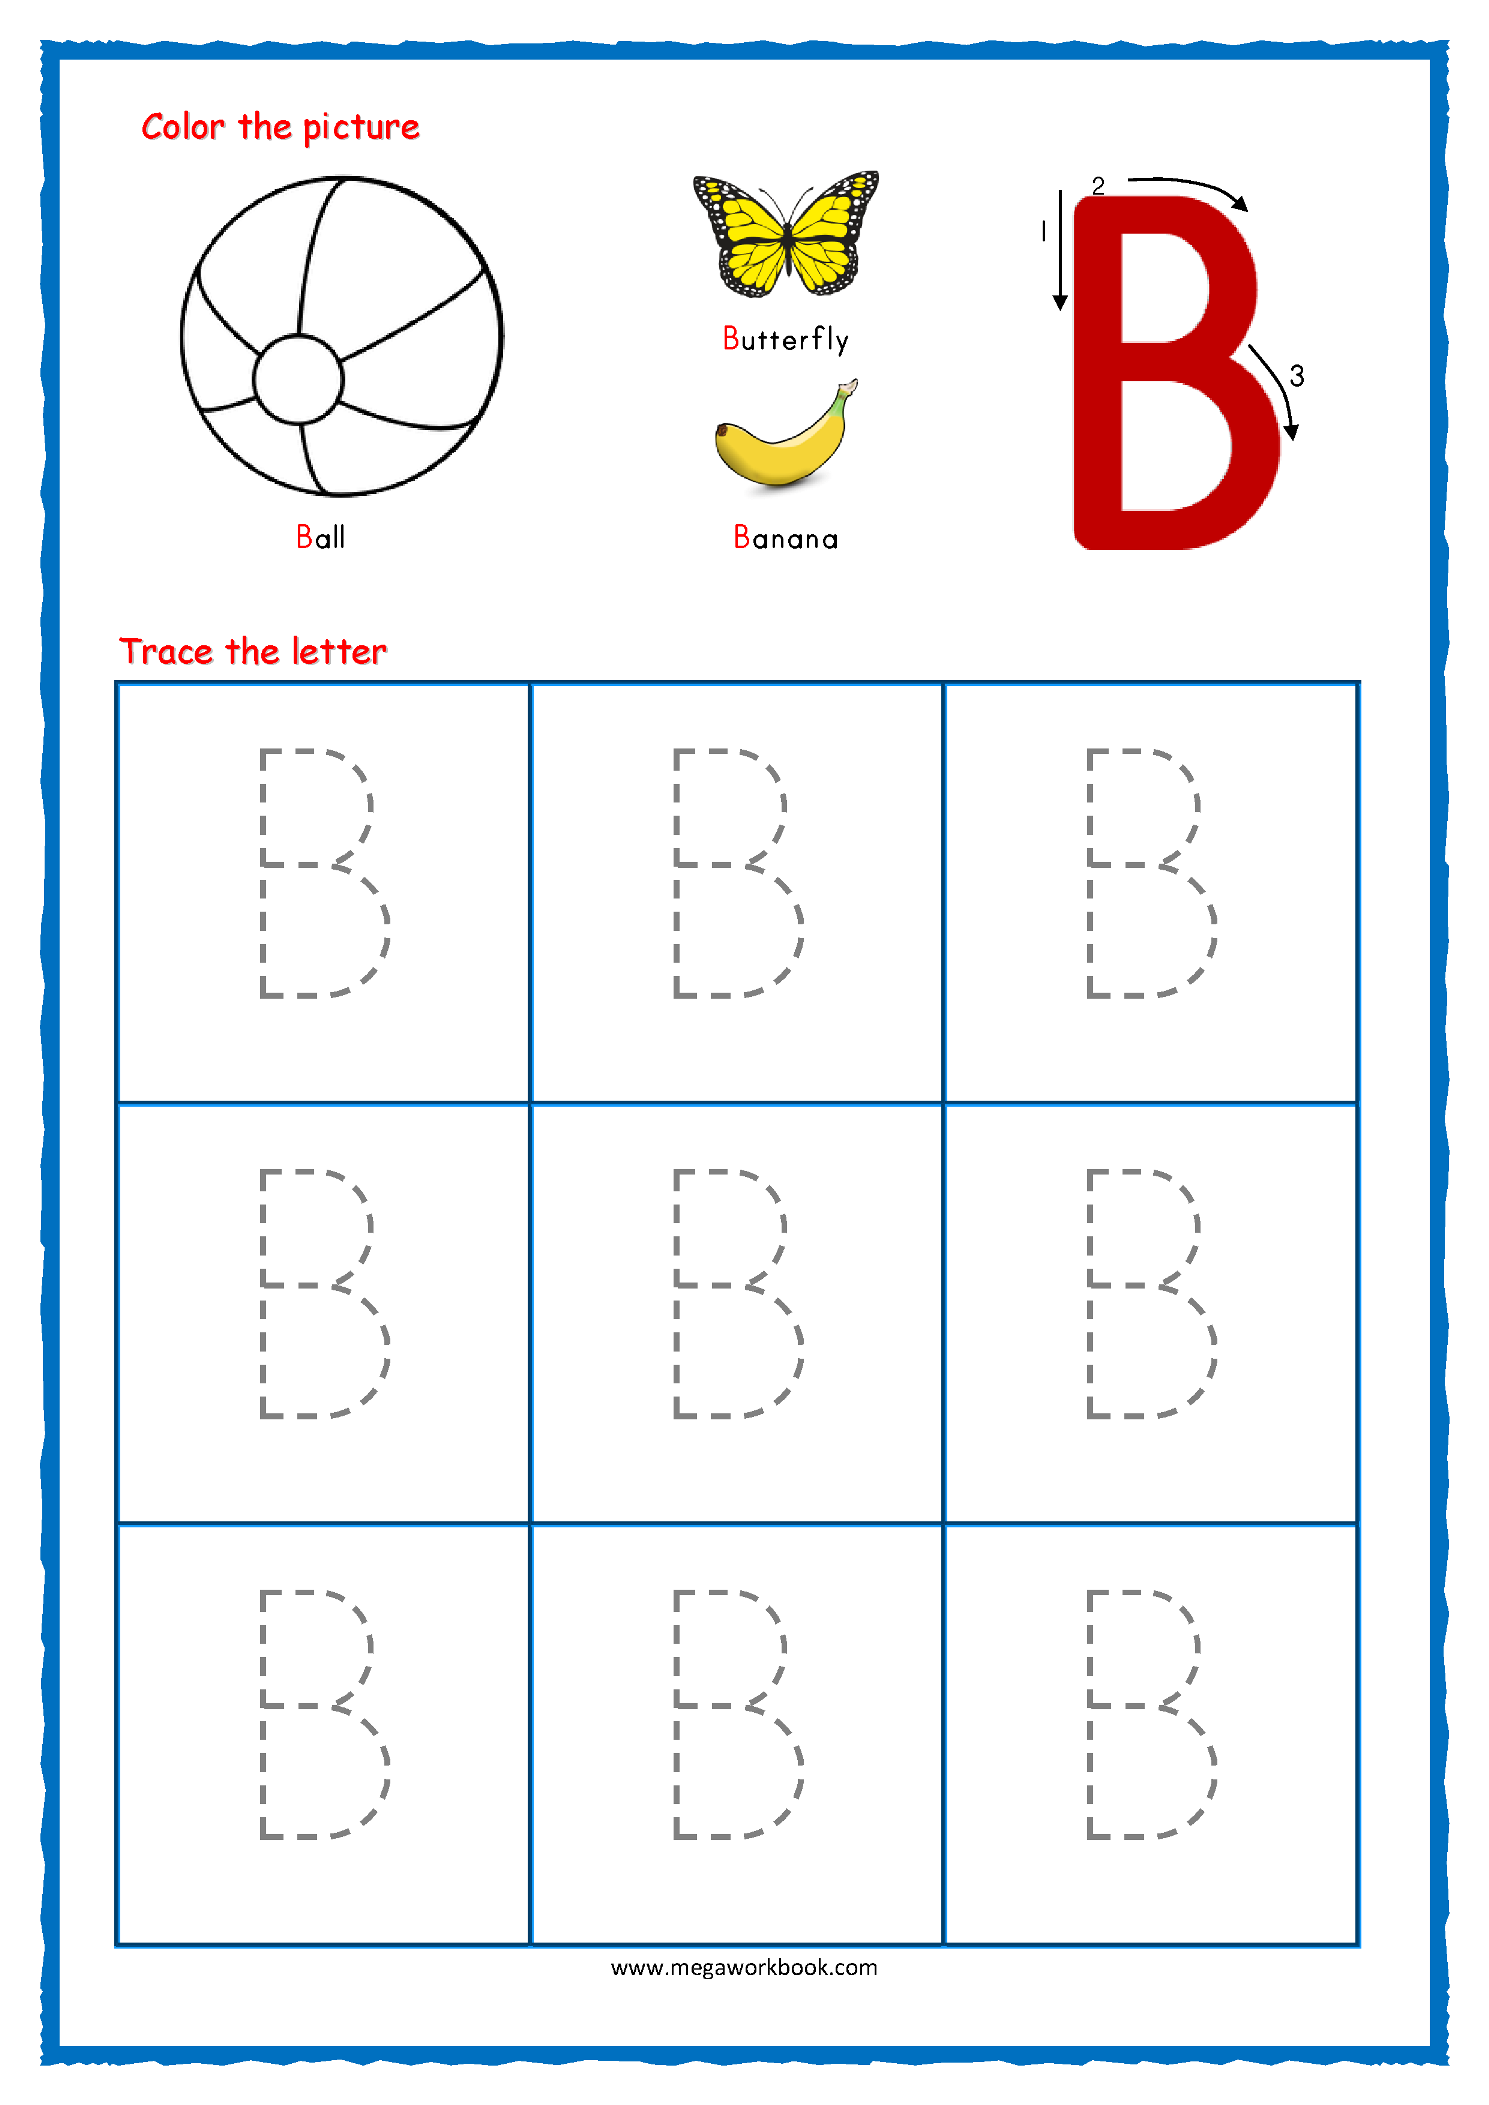 Tracing Letters Alphabet Tracing Capital Letters Letter Tracing Worksheets Free Printables Megaworkbook